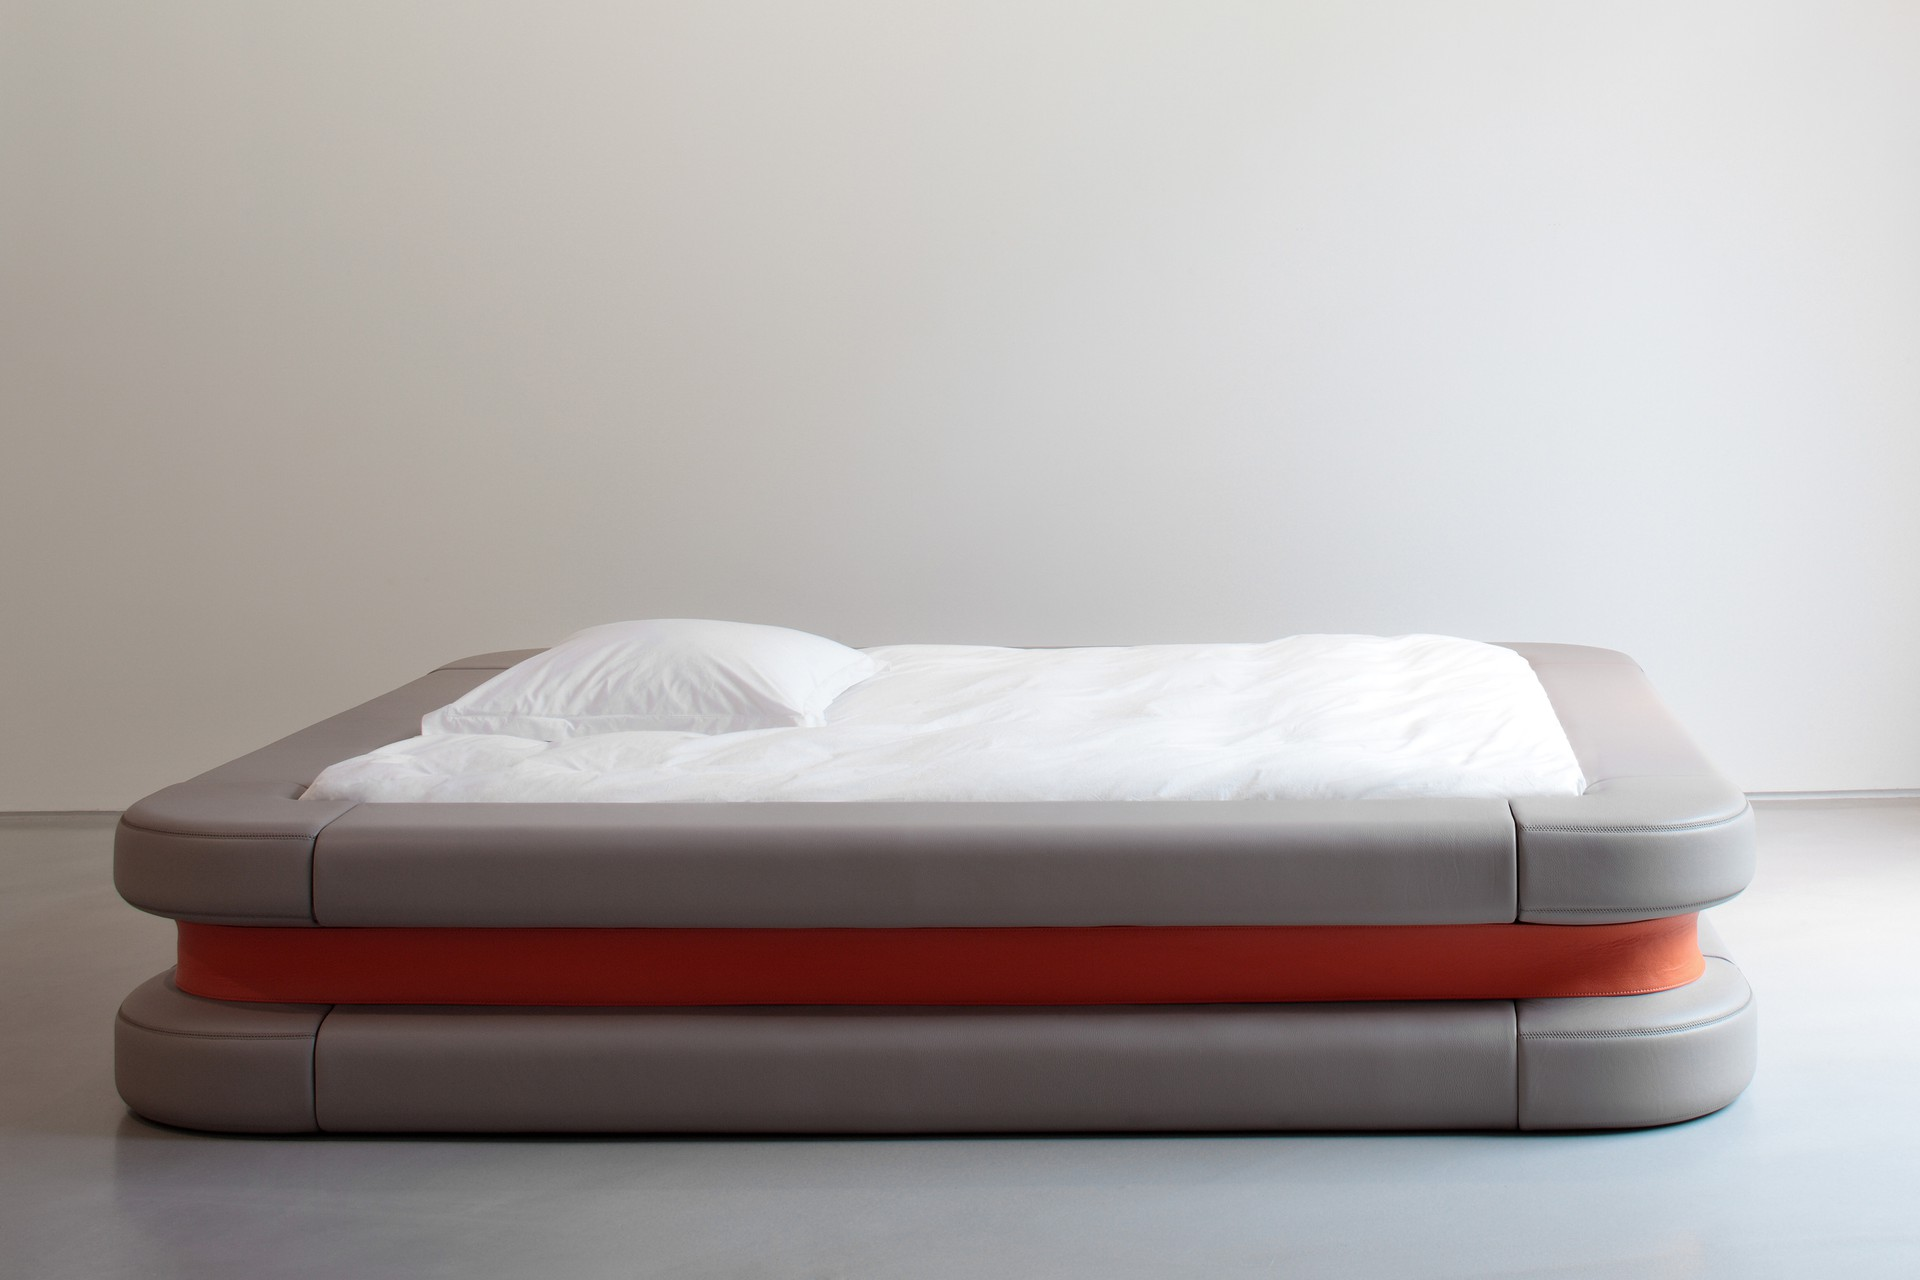 Bumper Bed Marc Newson Ltd